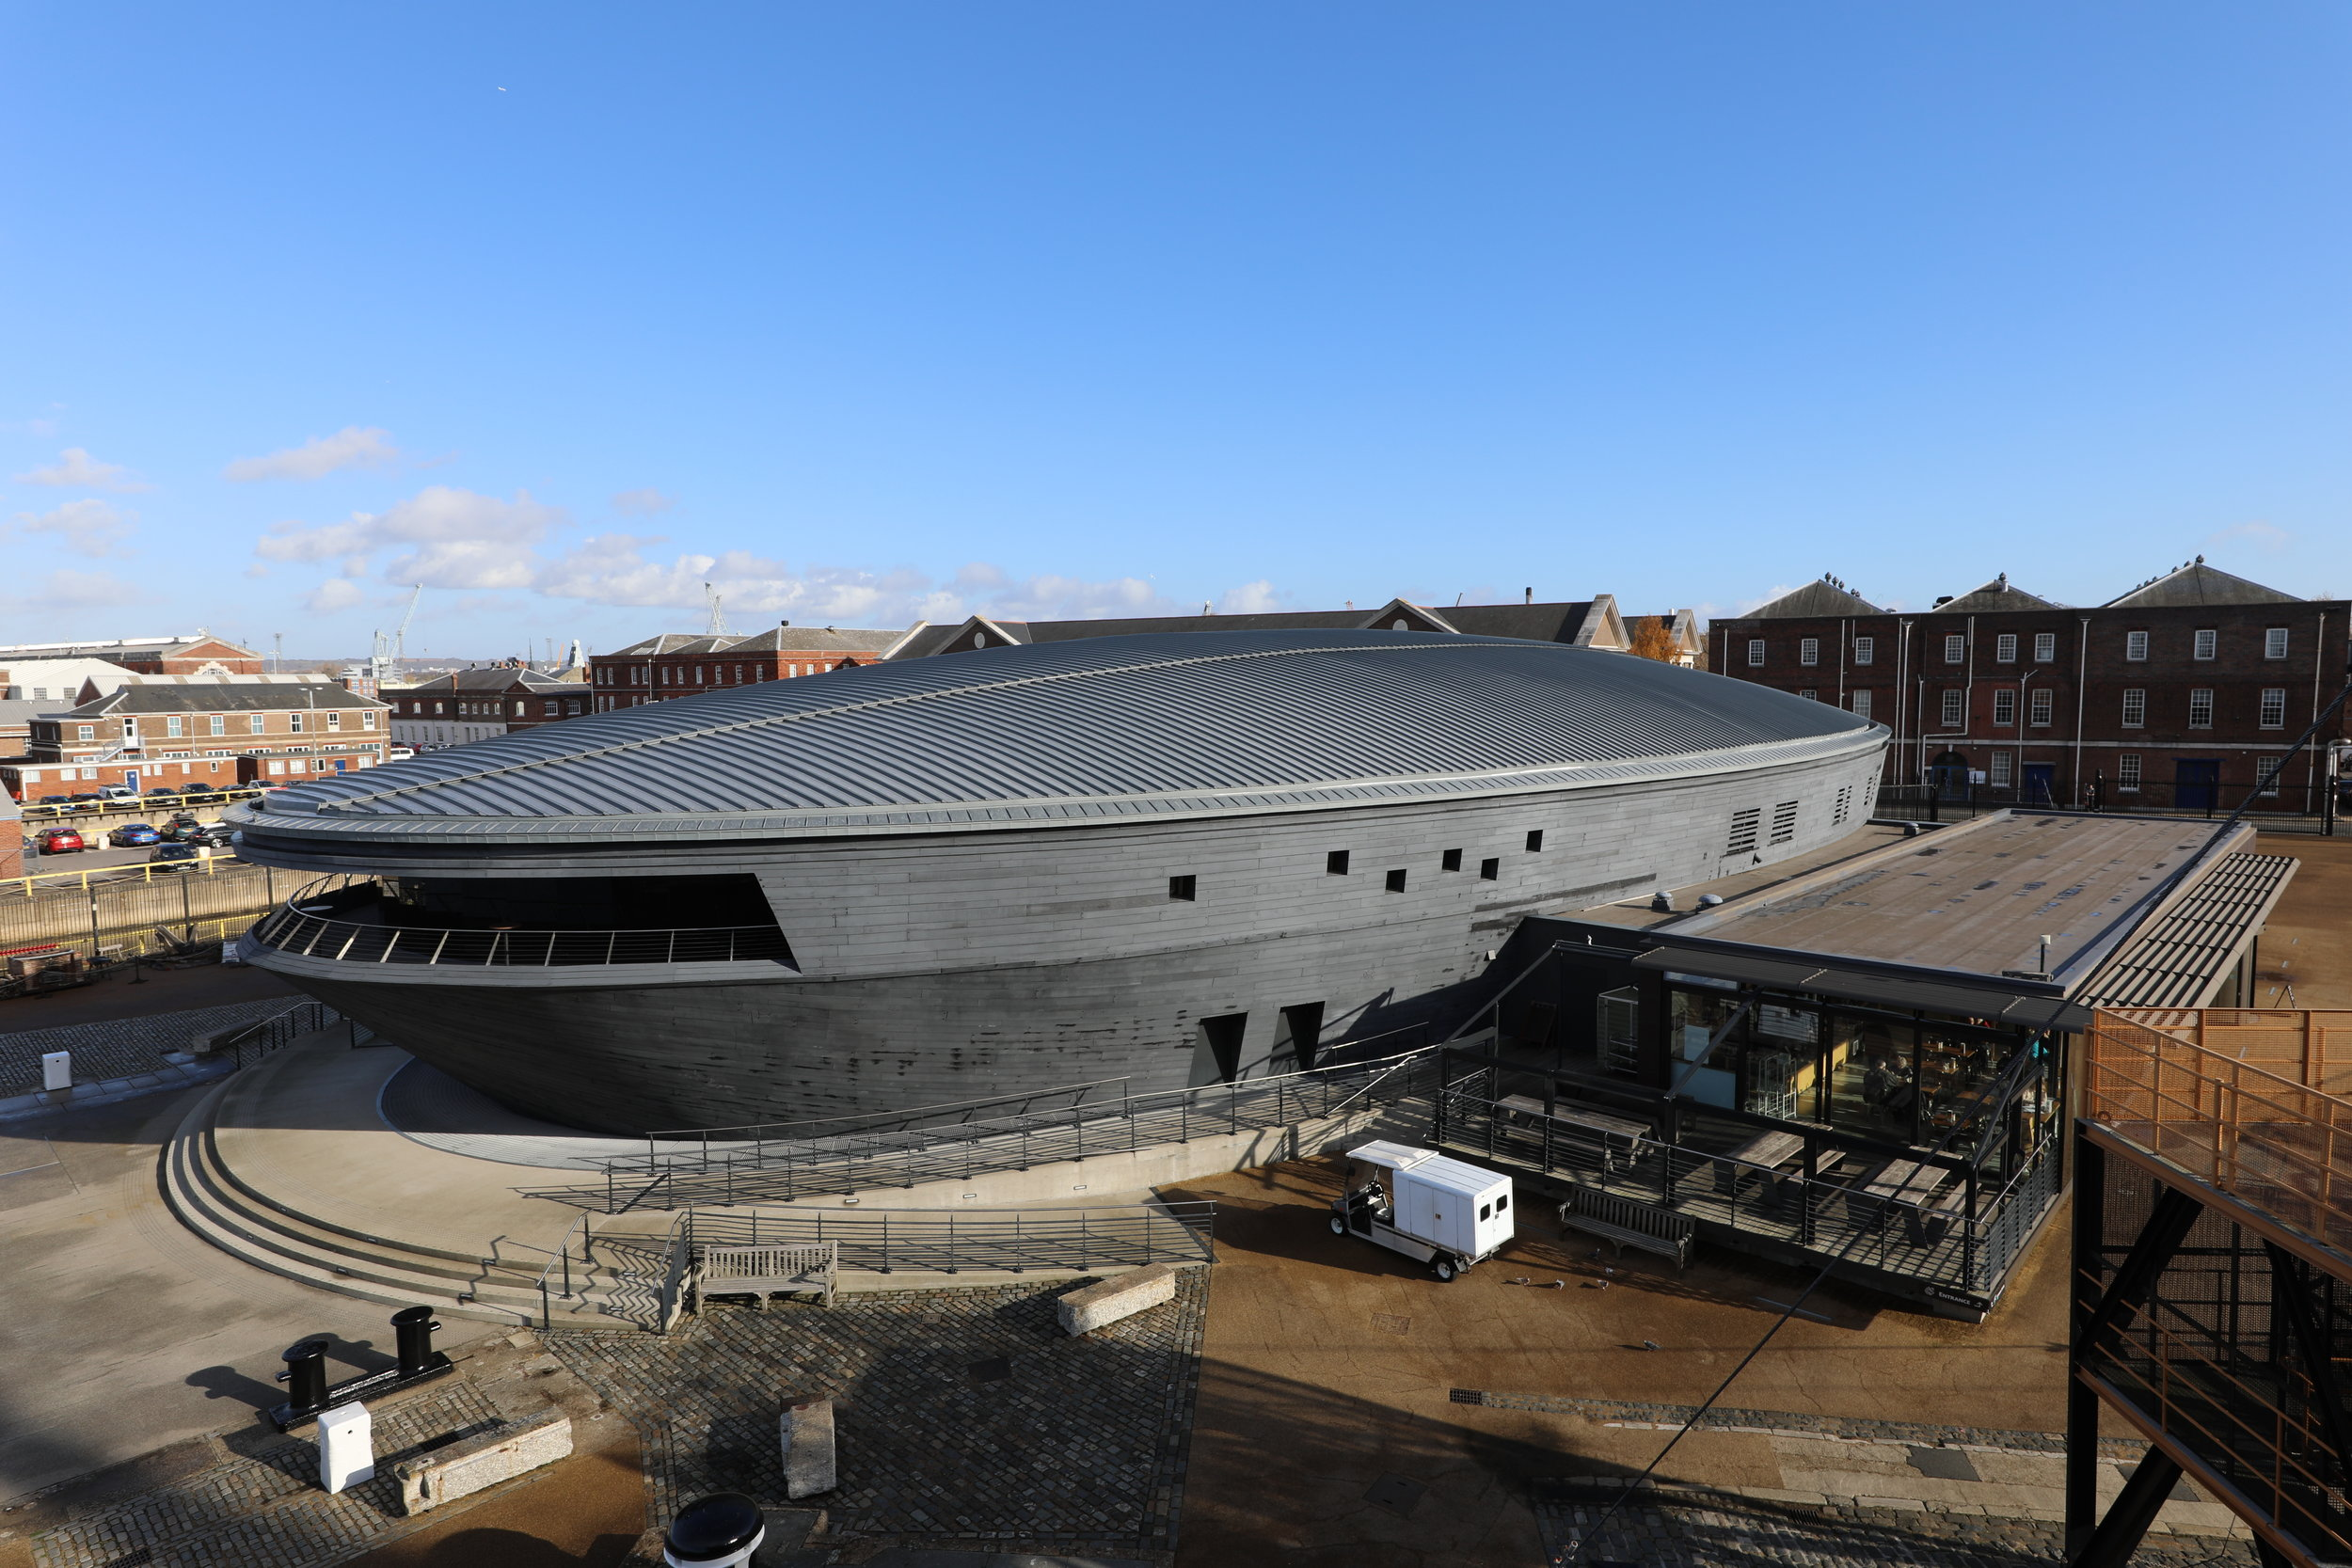 Mary_rose_museum_exterior(Wikimedia-Commons).JPG